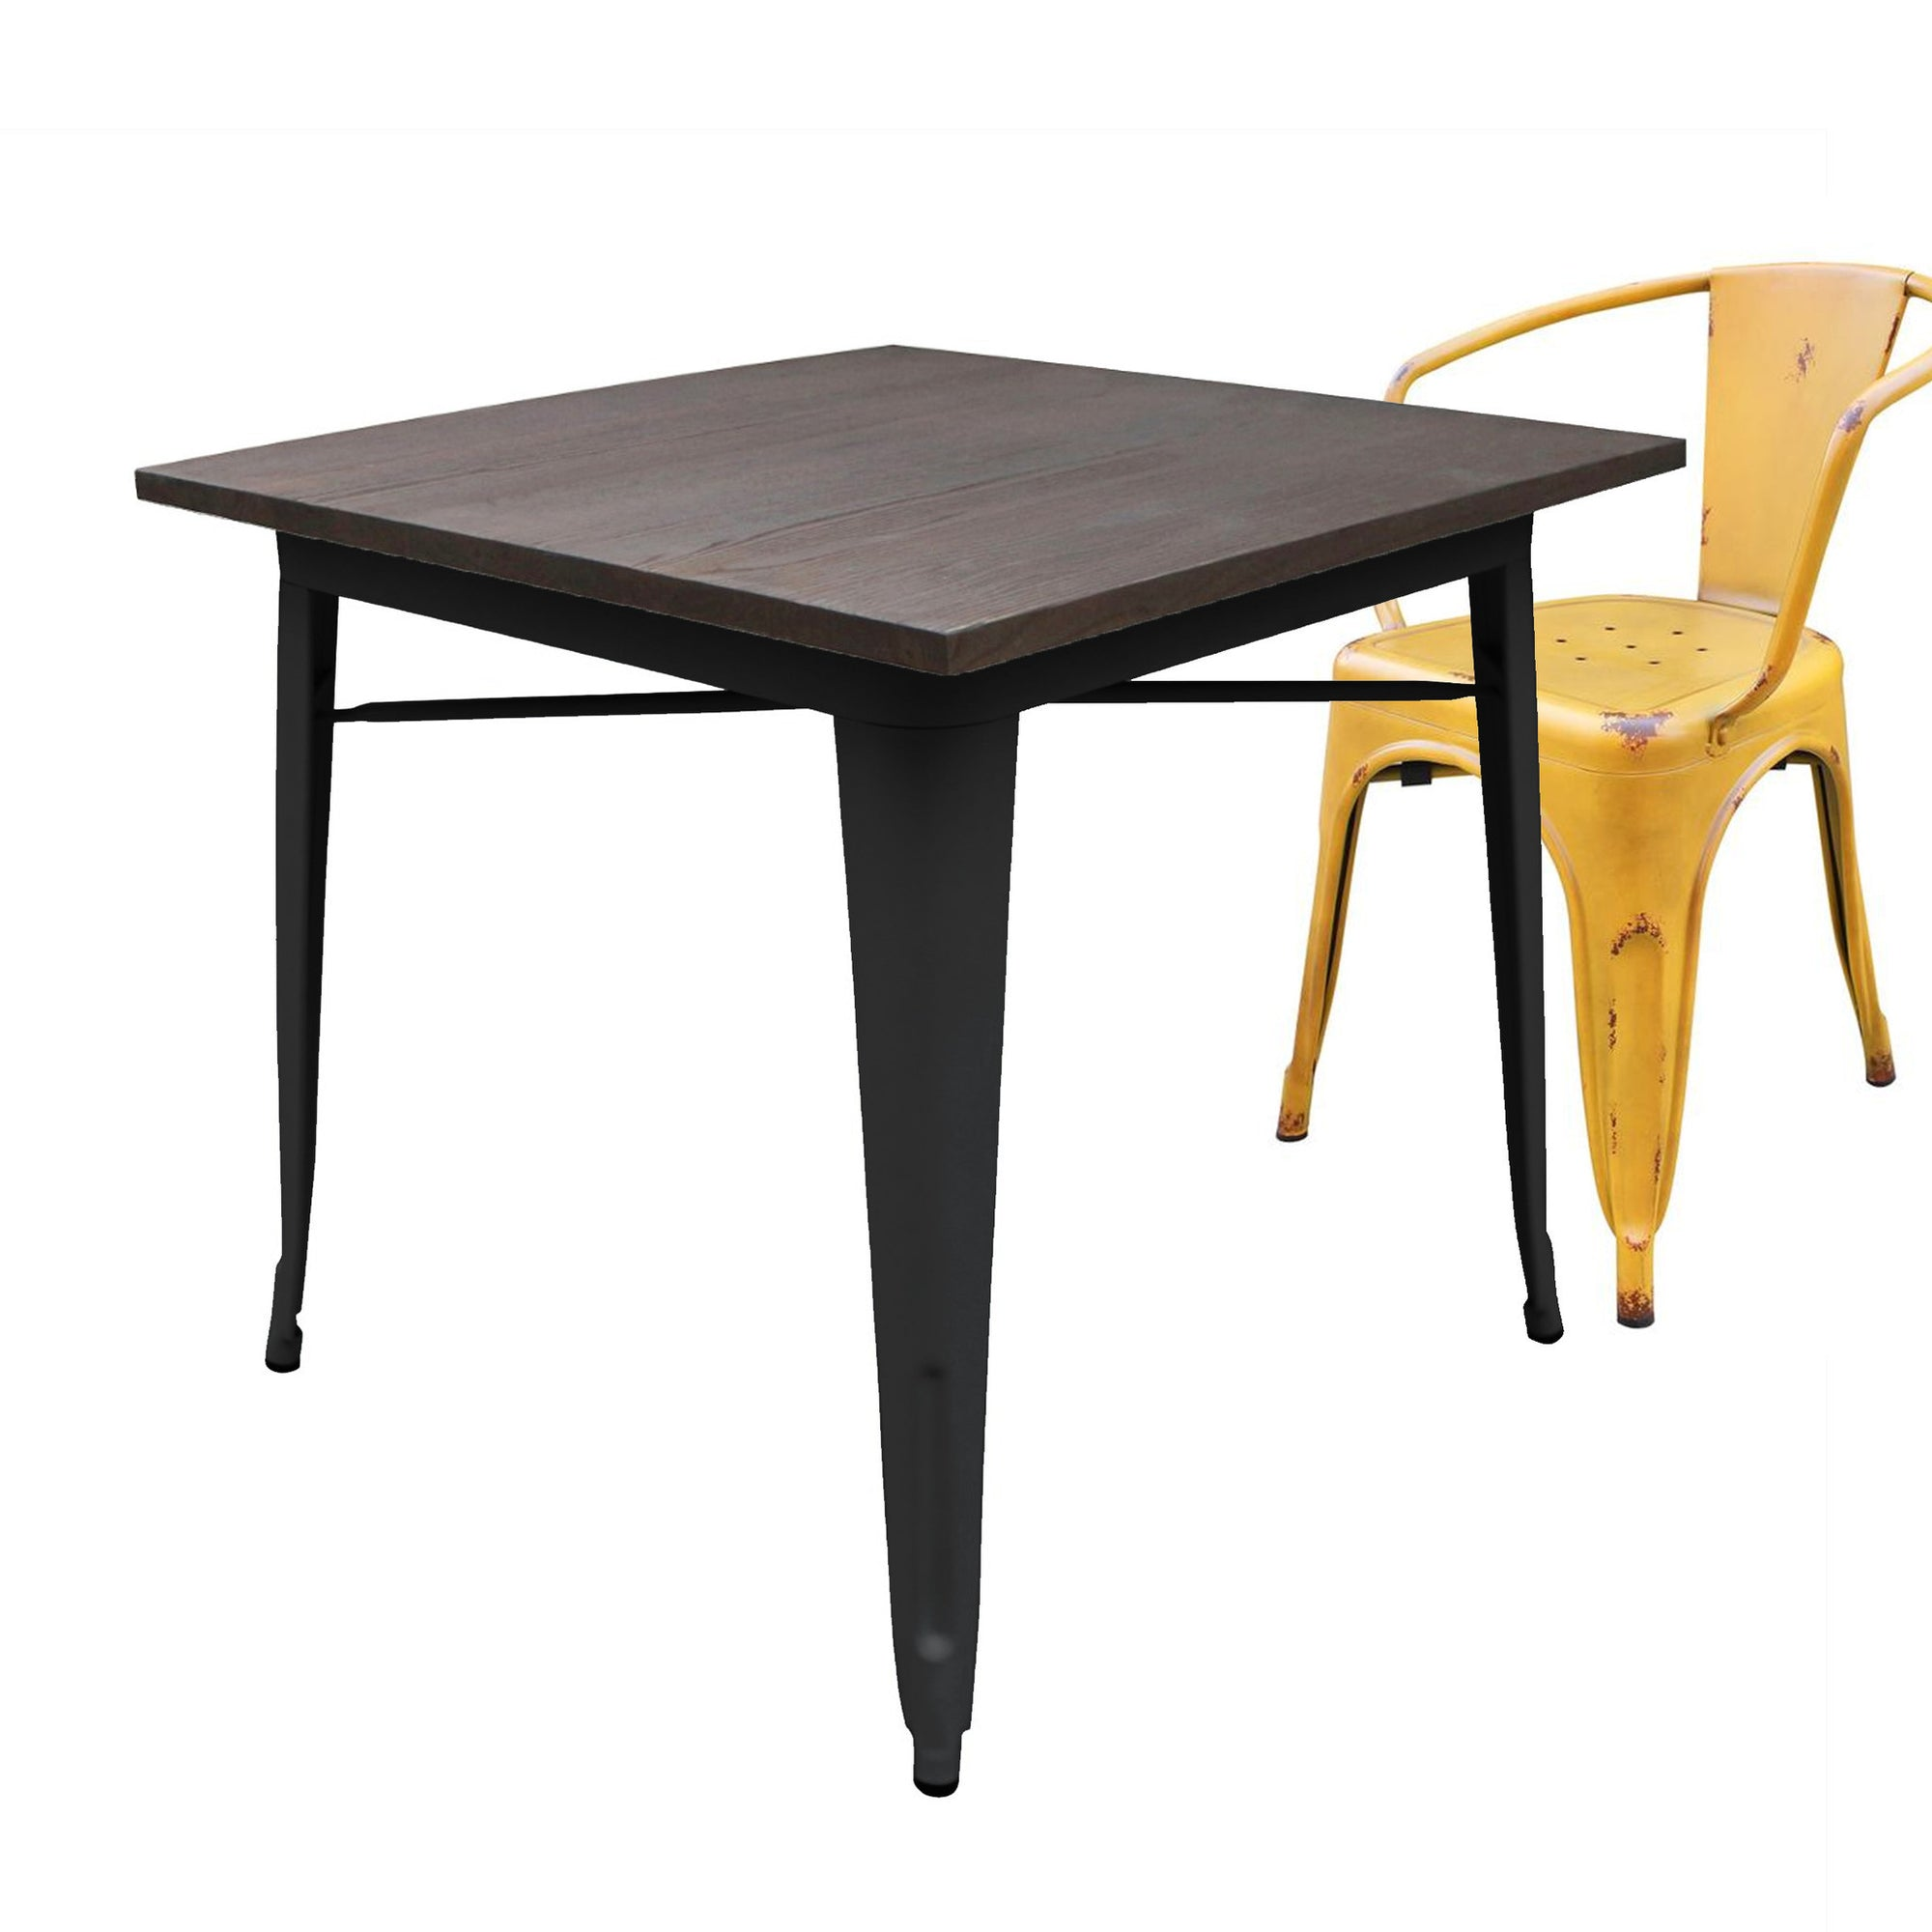 Dinning Table - Industrial Table With Solid Wood Top 80 Cm BPTT01B+W